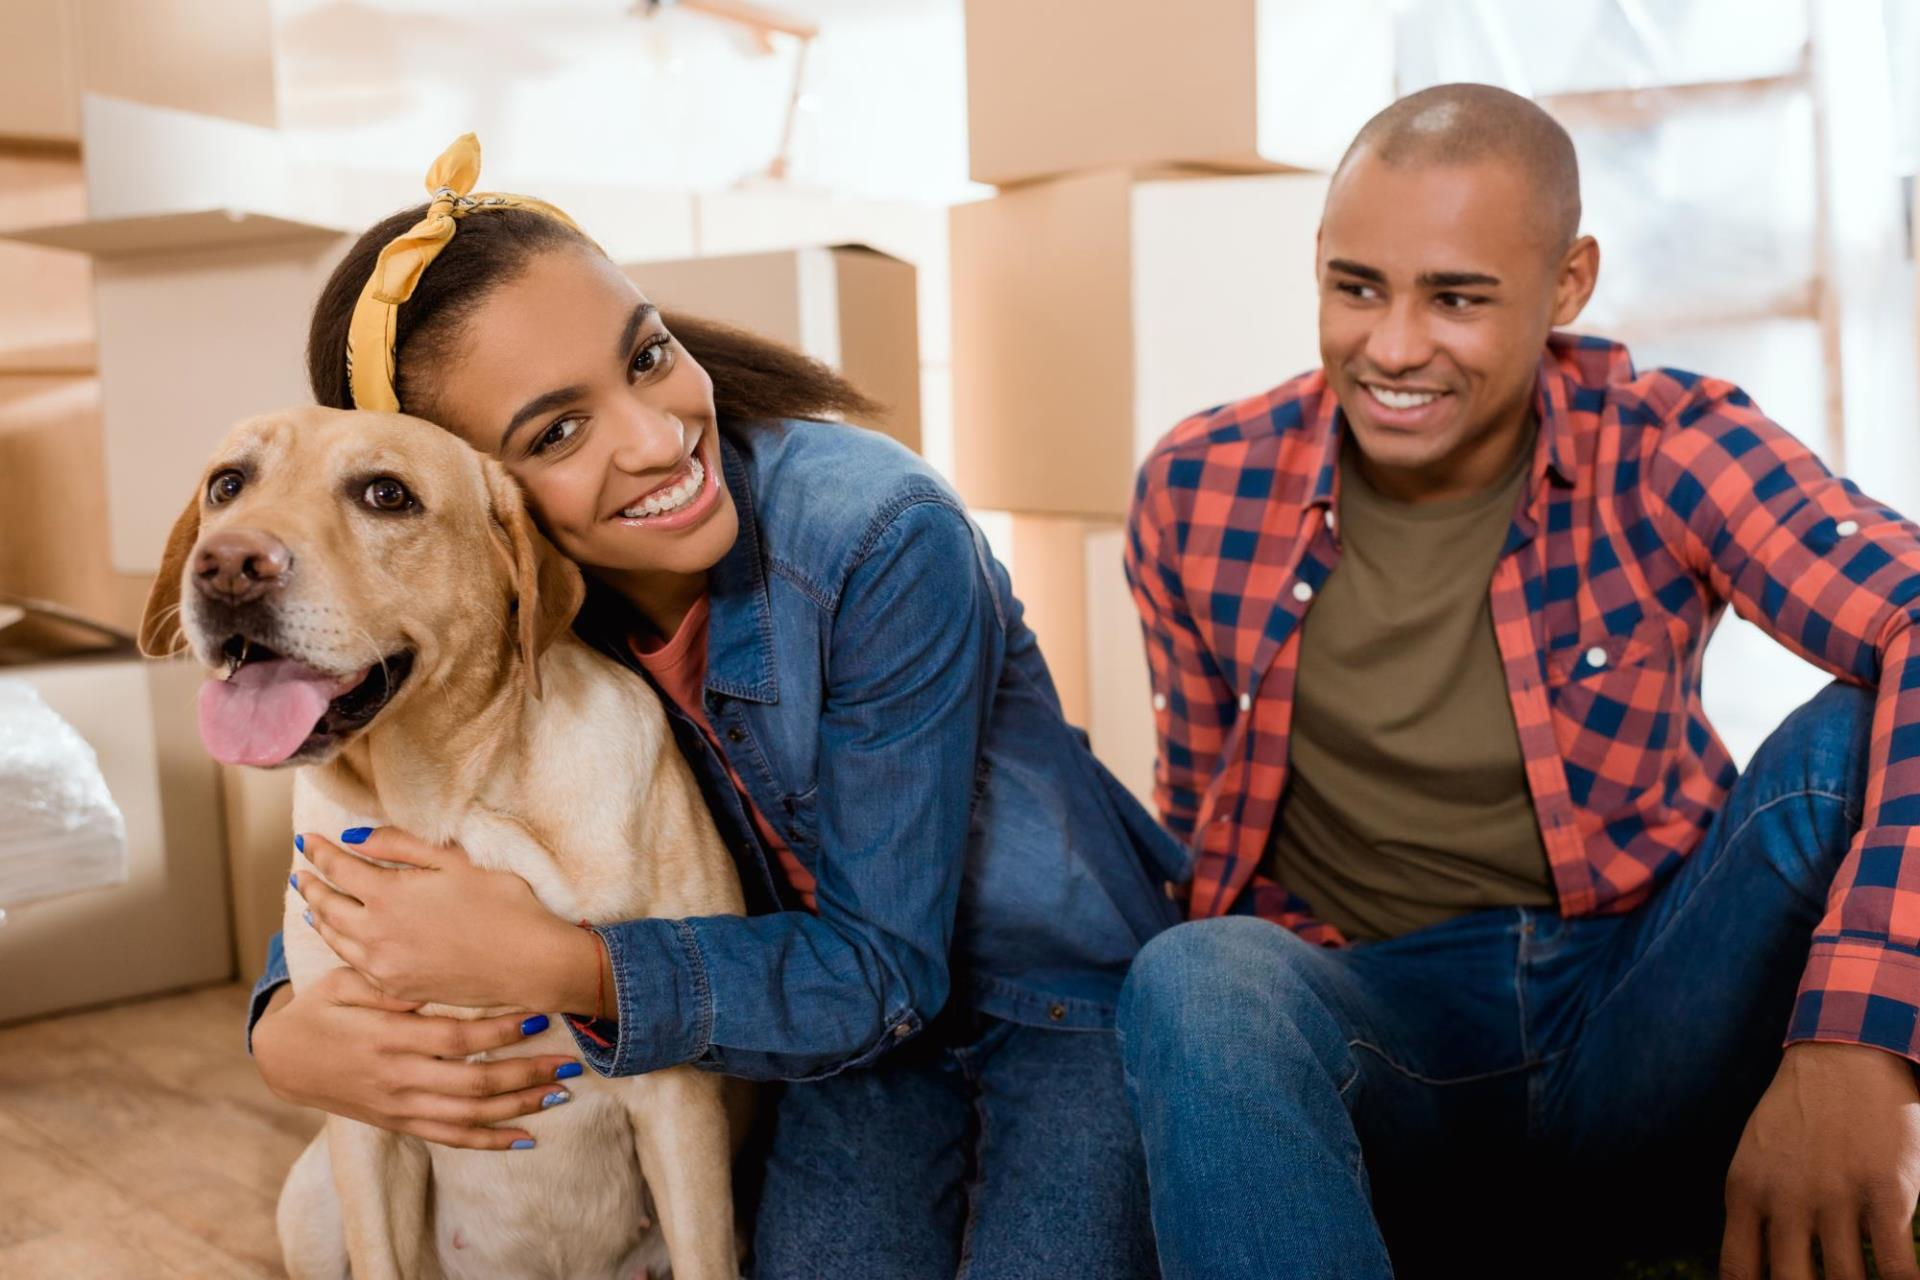 Man, women and dog with moving boxes behind them